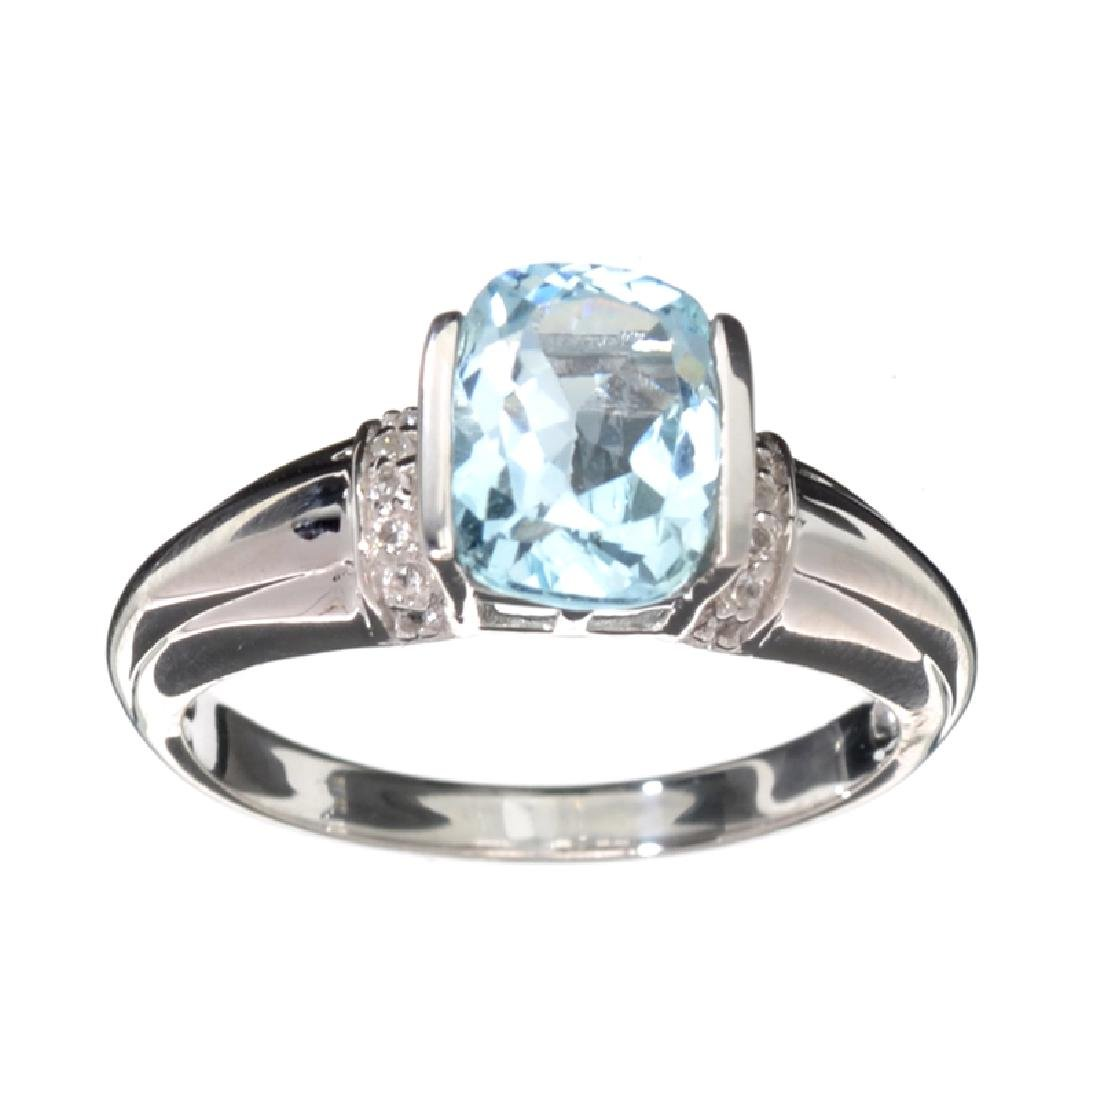 APP: 0.4k Fine Jewelry 2.53CT Blue Topaz And White